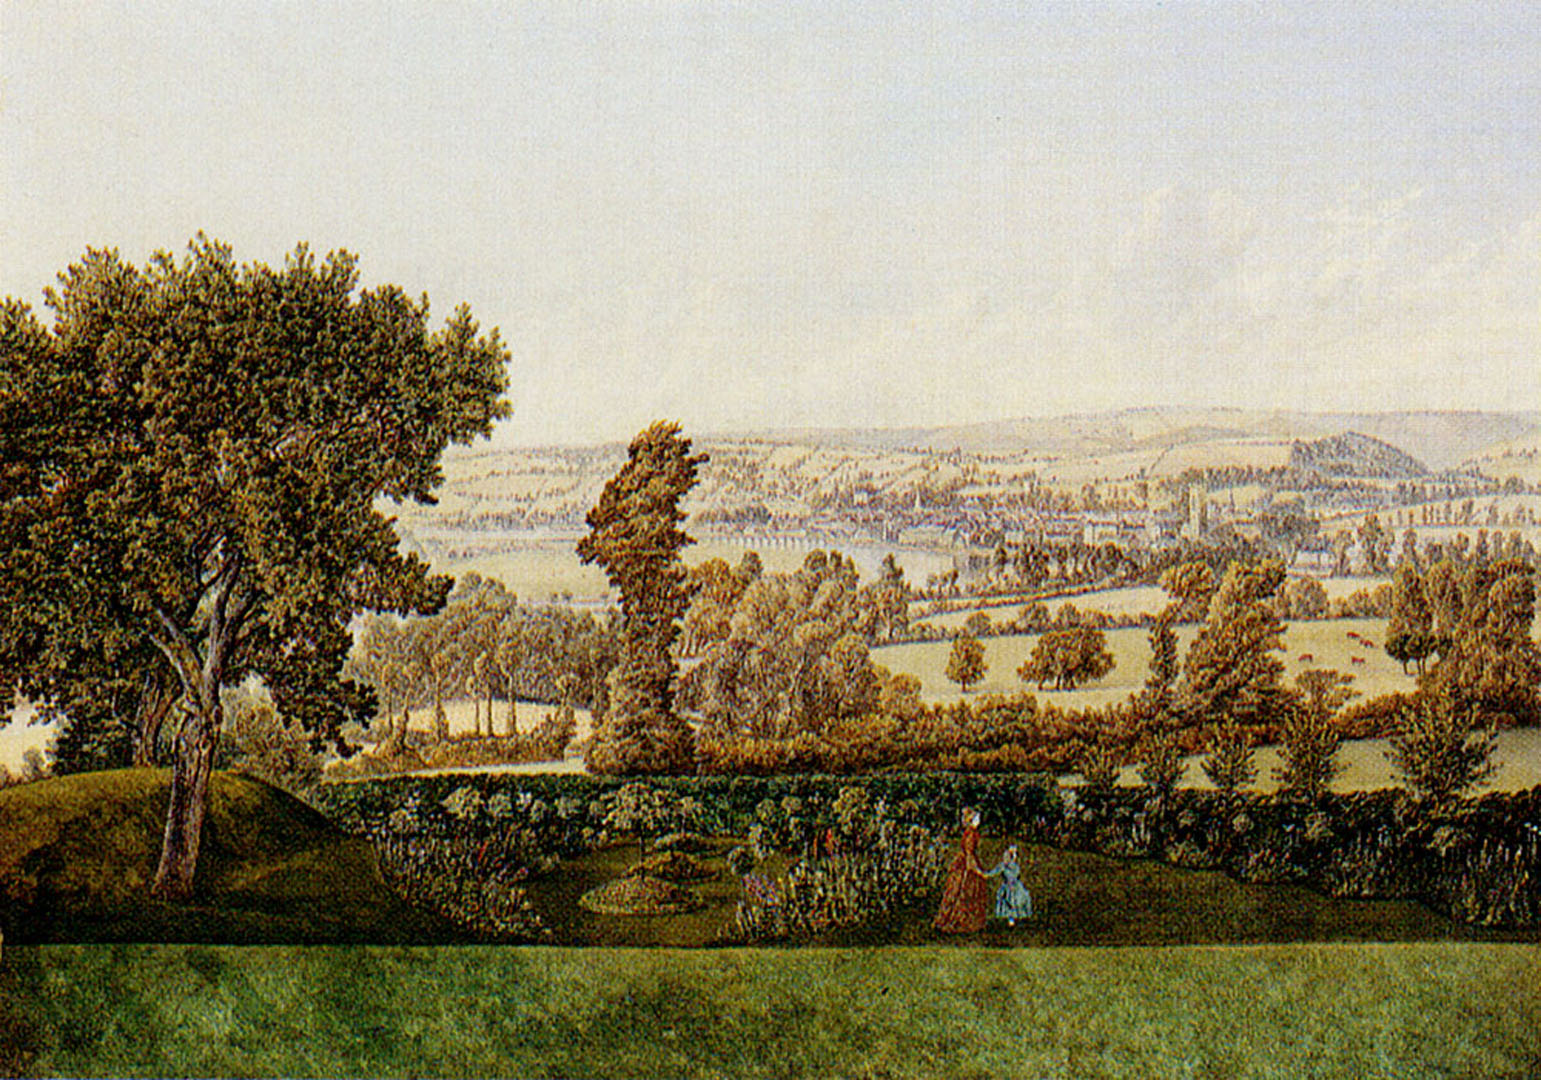 Garden Landscape In The West Country   English Art Wallpaper Image 1541x1080